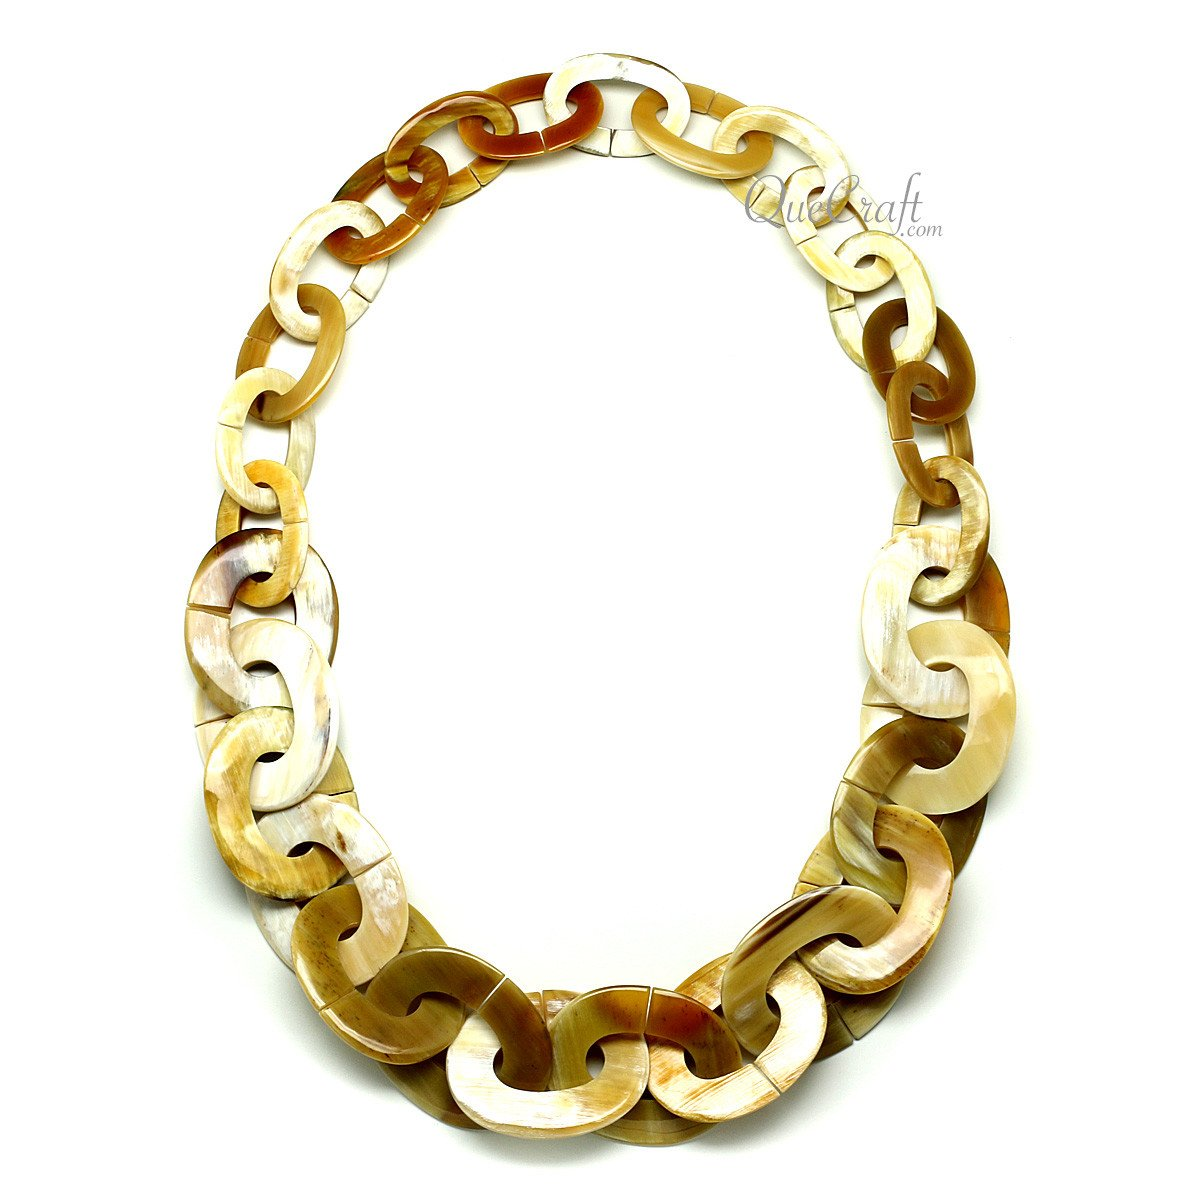 Horn Chain Necklace #12057 - HORN.JEWELRY by QueCraft